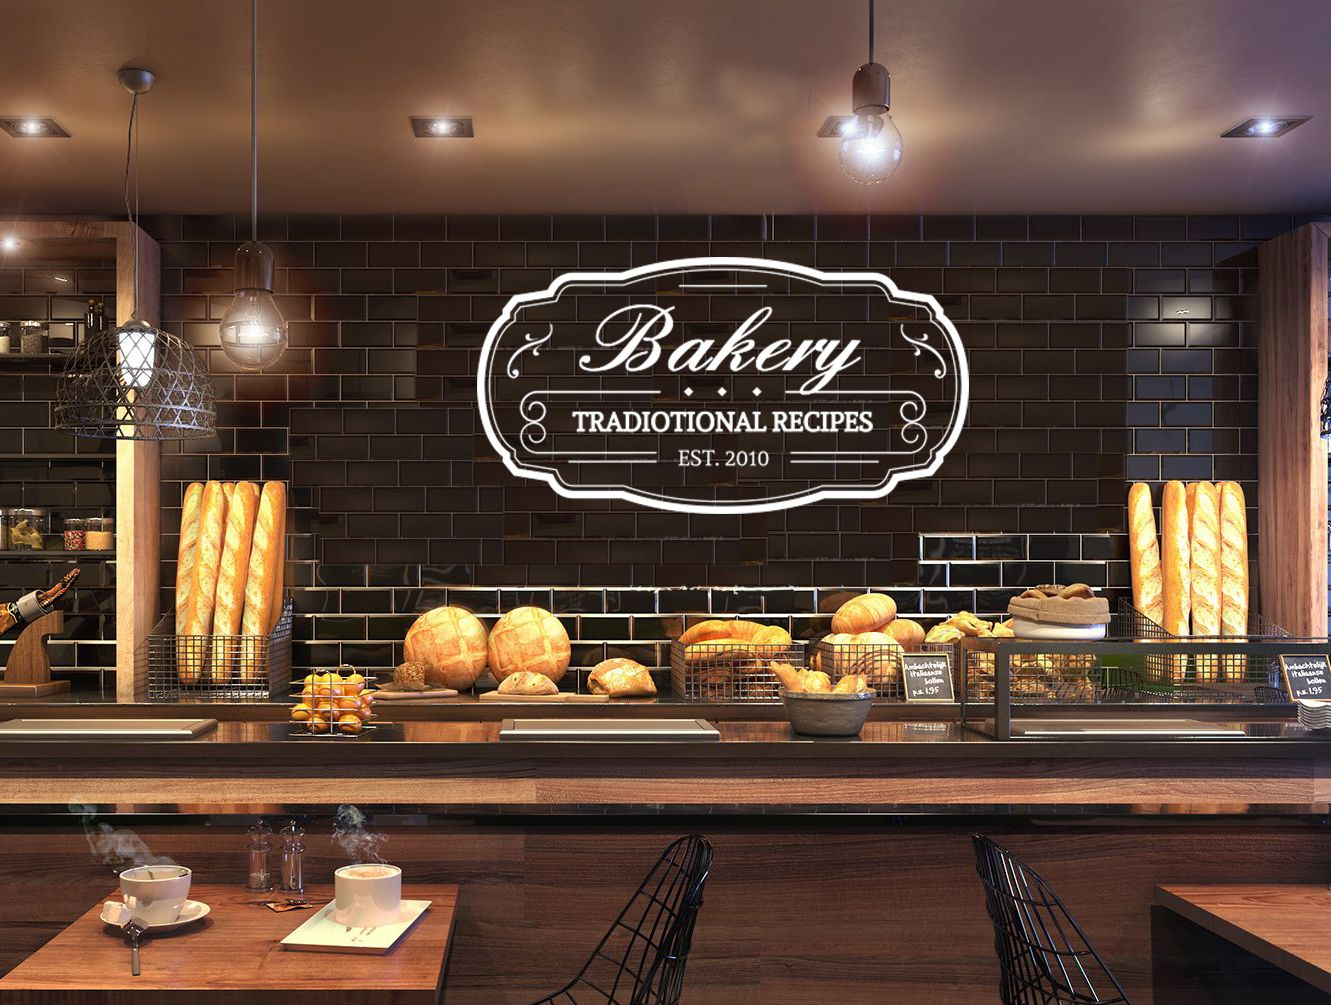 Bakery shop logo write your name bakeshop kitchen cafe vinyl decal home room interior decoration waterproof high quality mural re also rh in pinterest